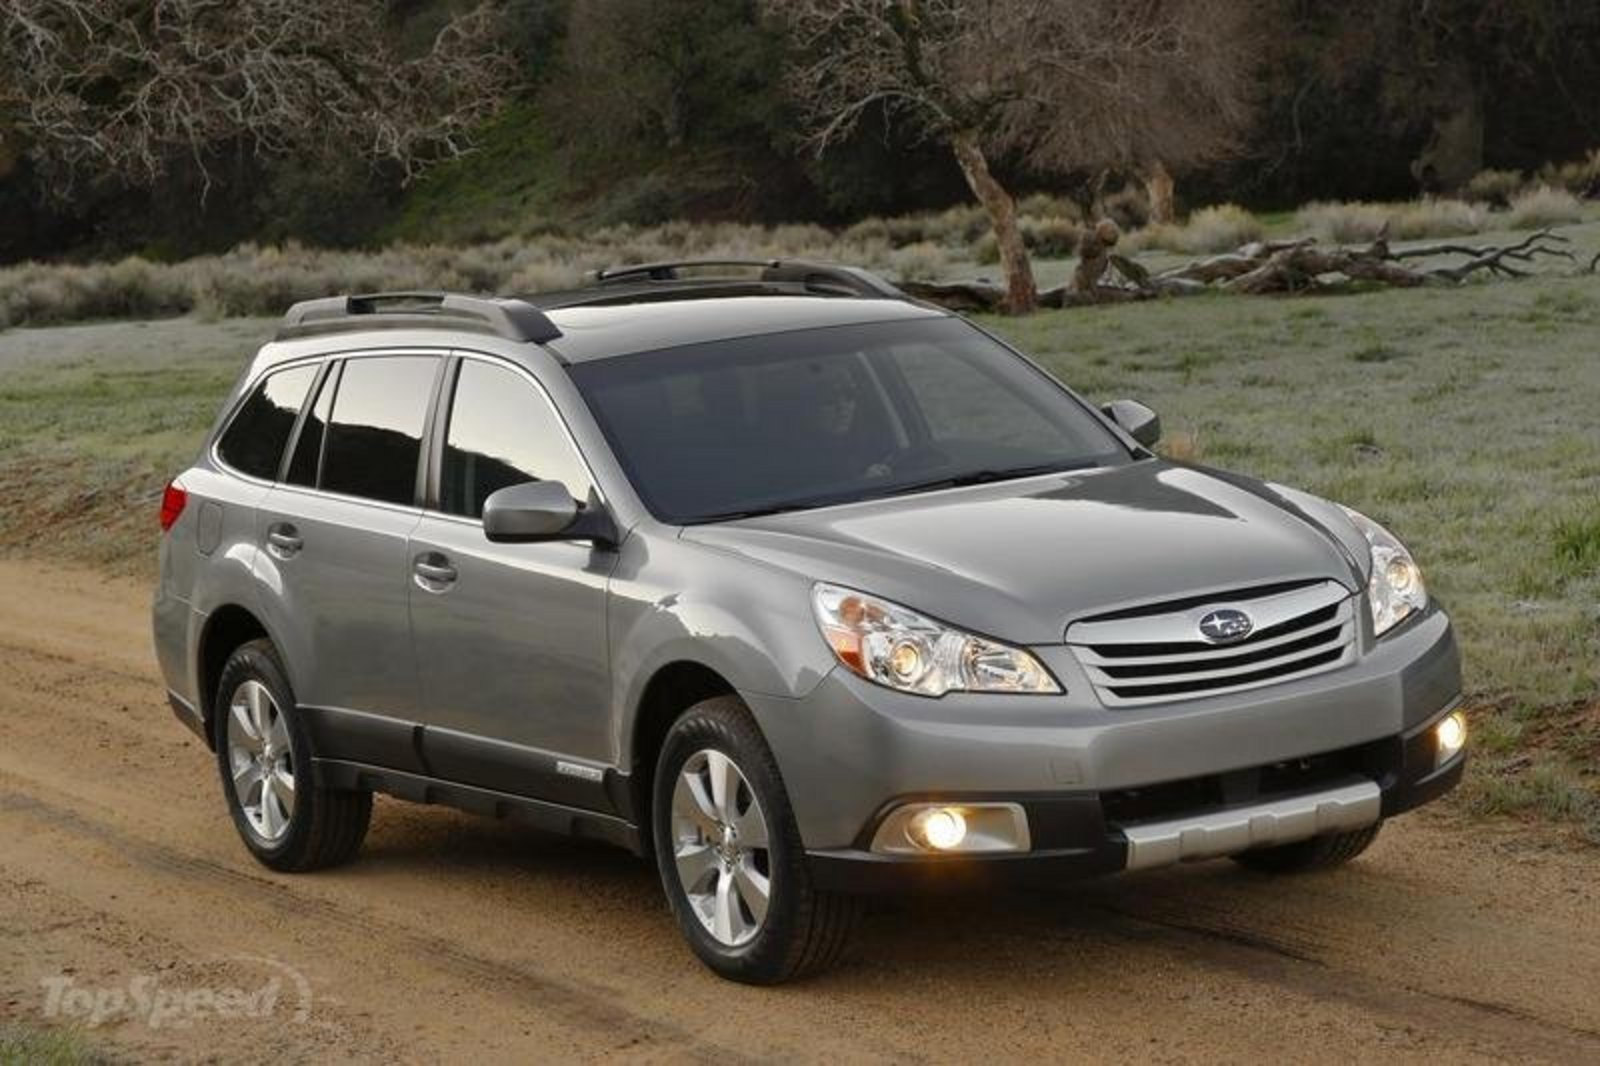 Subaru Outback Reviews Specs Prices Photos And Videos Top Speed 2007 Wiring Issues Another Recall For The 2010 Legacy Due To Problems